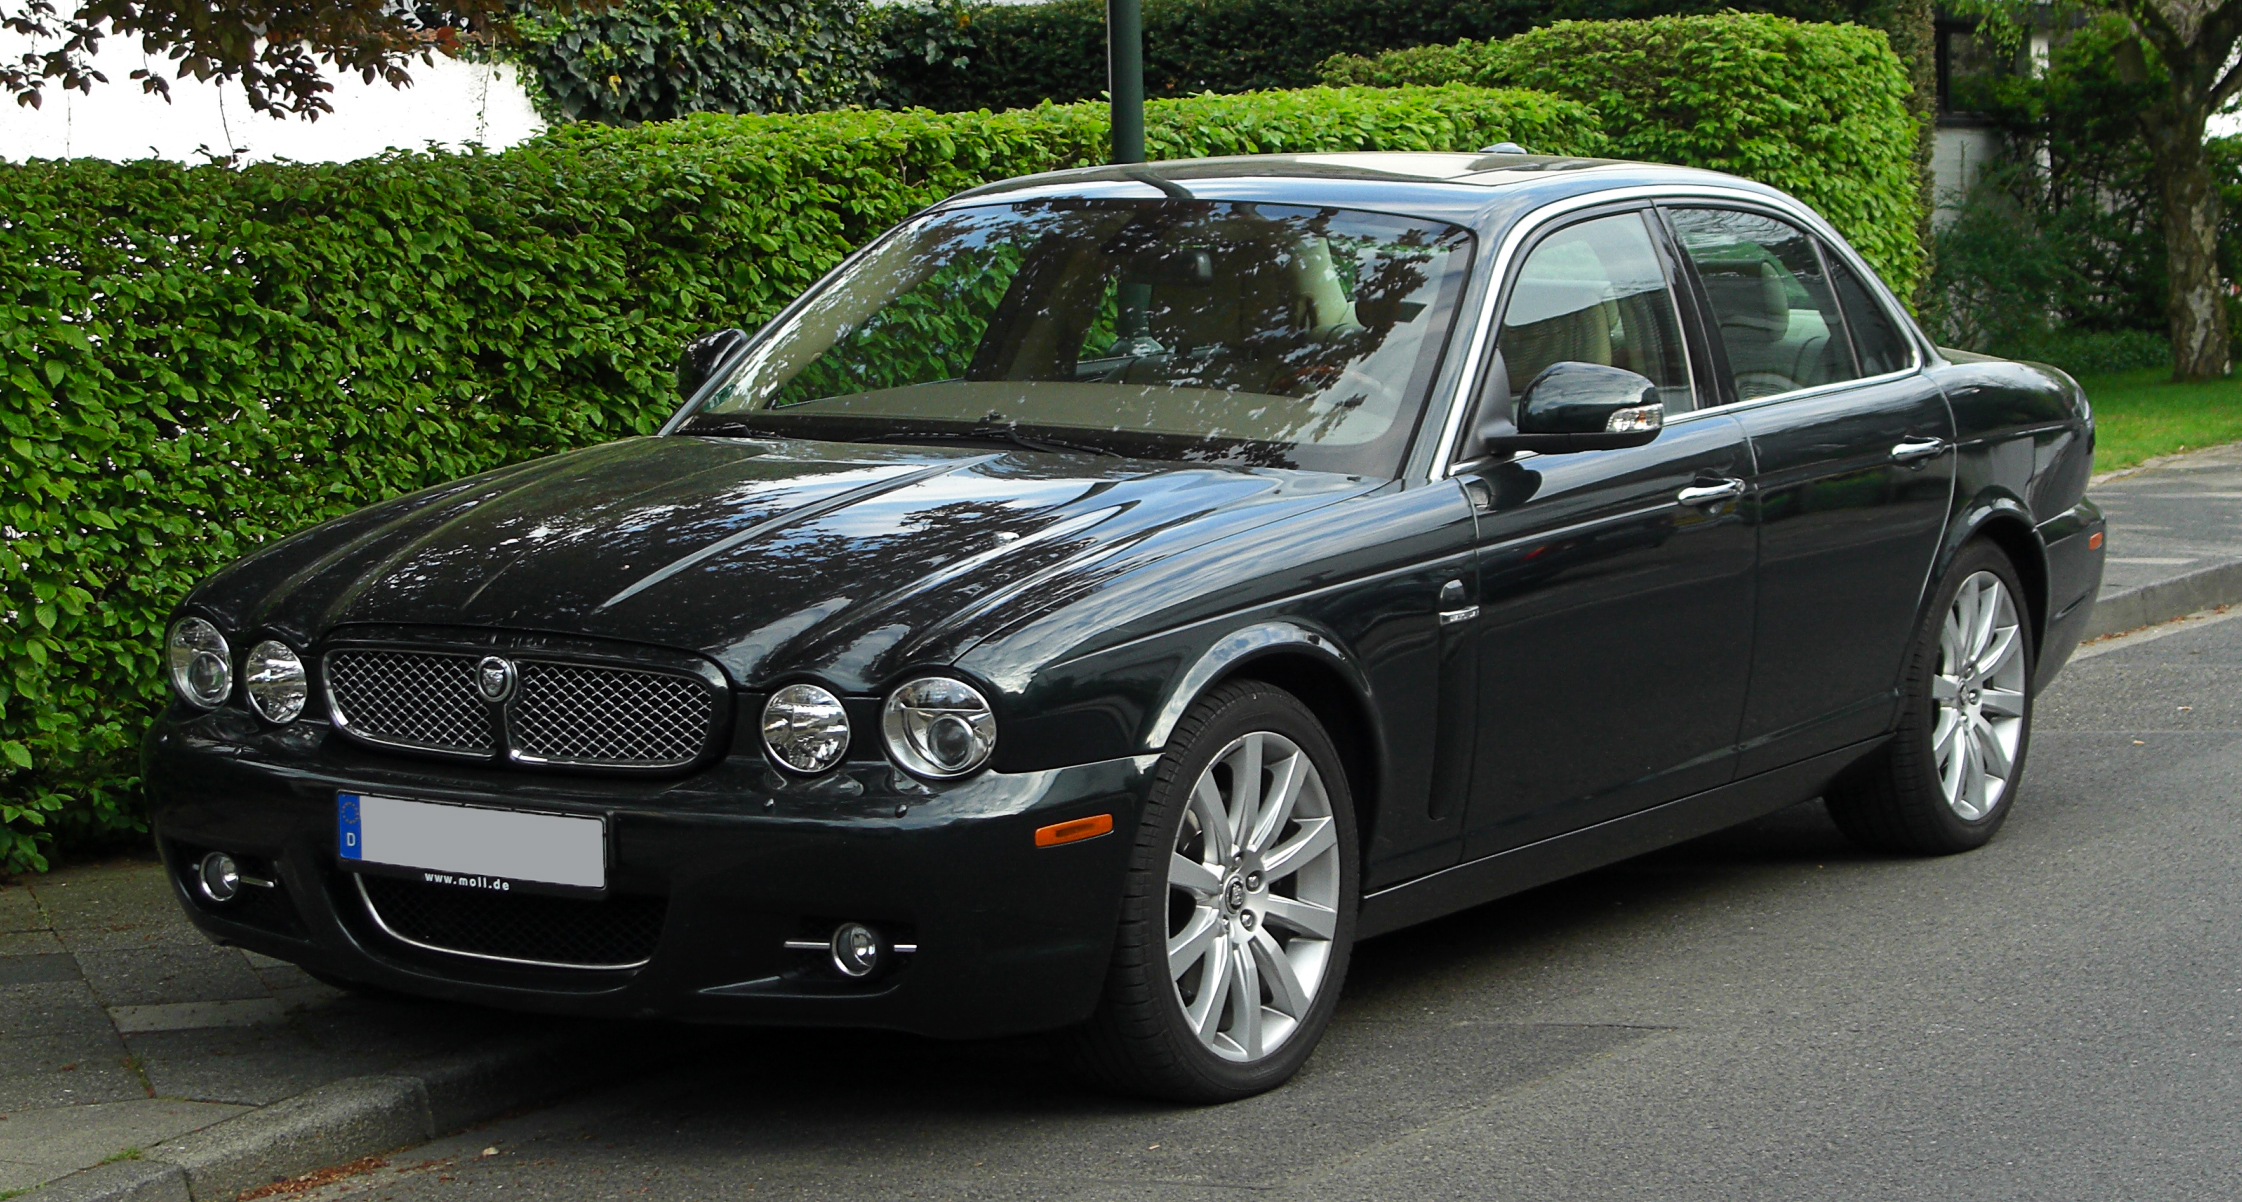 file jaguar xj 2 7 d x350 facelift frontansicht 17 april 2011 d wikimedia. Black Bedroom Furniture Sets. Home Design Ideas